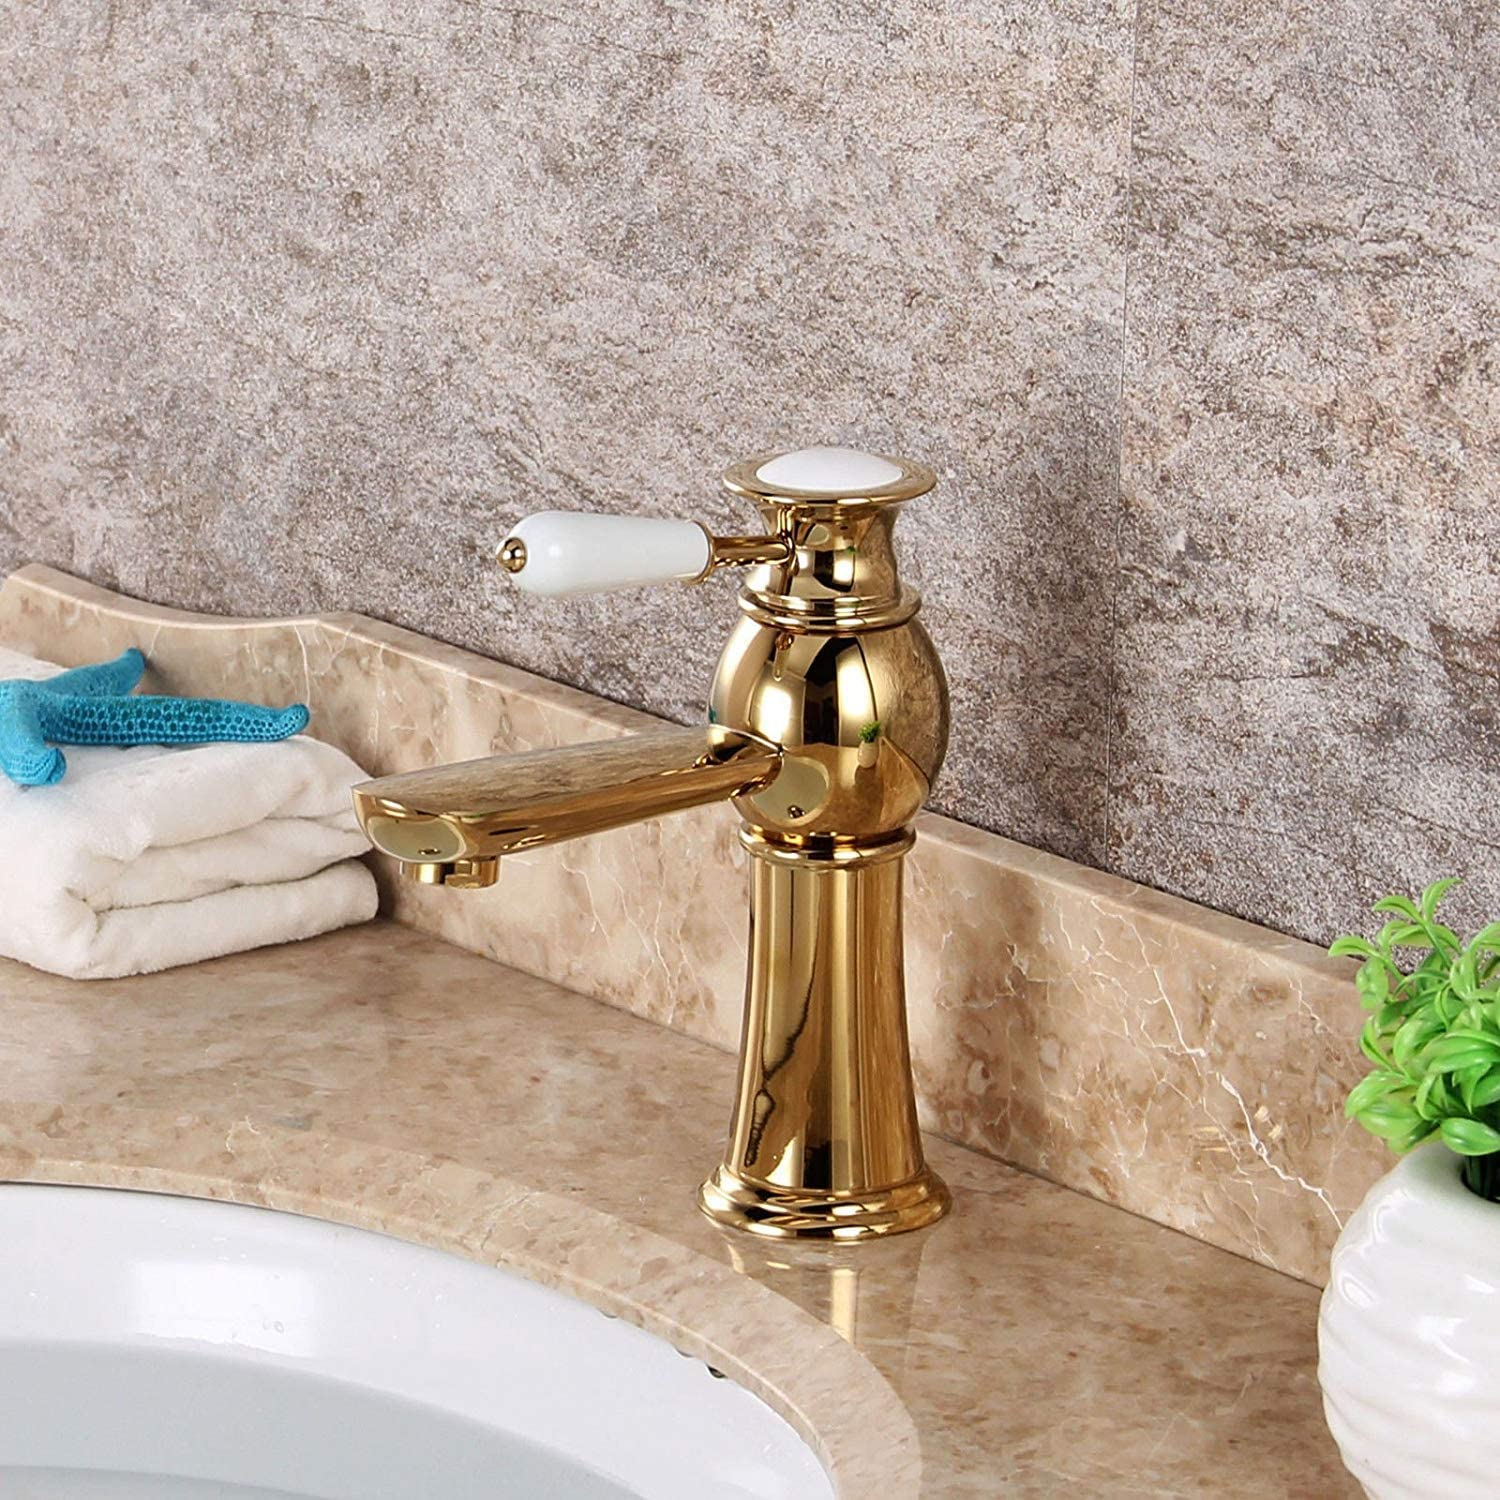 FERZA home Sink Mixer Tap Bathroom Kitchen Basin Tap Leakproof Save Water Full Kitchen With Copper gold Plated Hot And Cold Single Mix